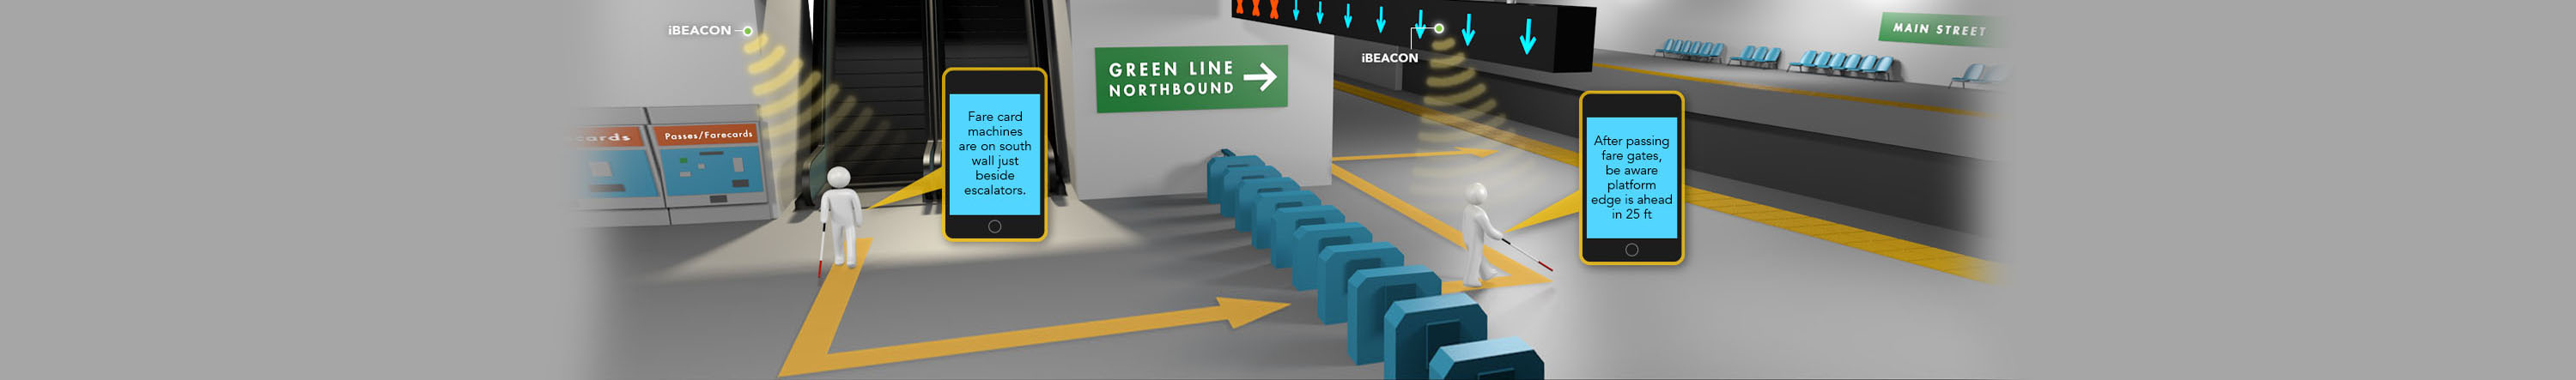 Graphic illustration showing blind pedestrian traveling with support of narrative directions from a bus stop to a nearby subway entrance.